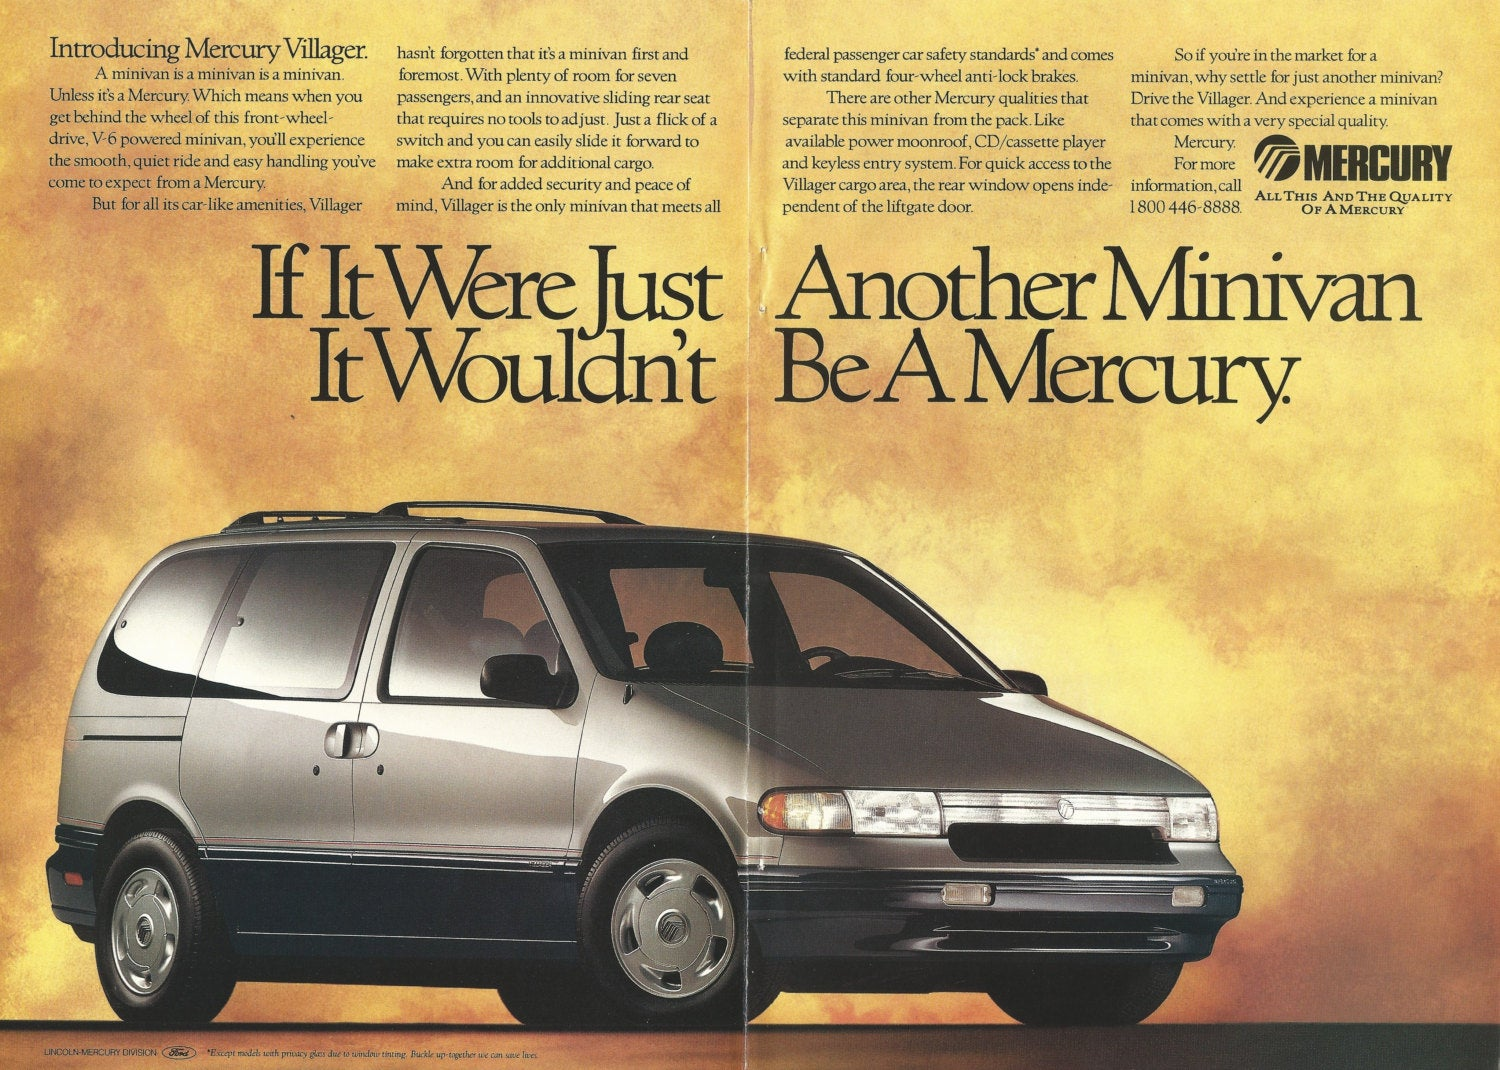 meh car monday ugh, the mercury villager, especially that nautica oneMercury Villager Nissan Quest #3